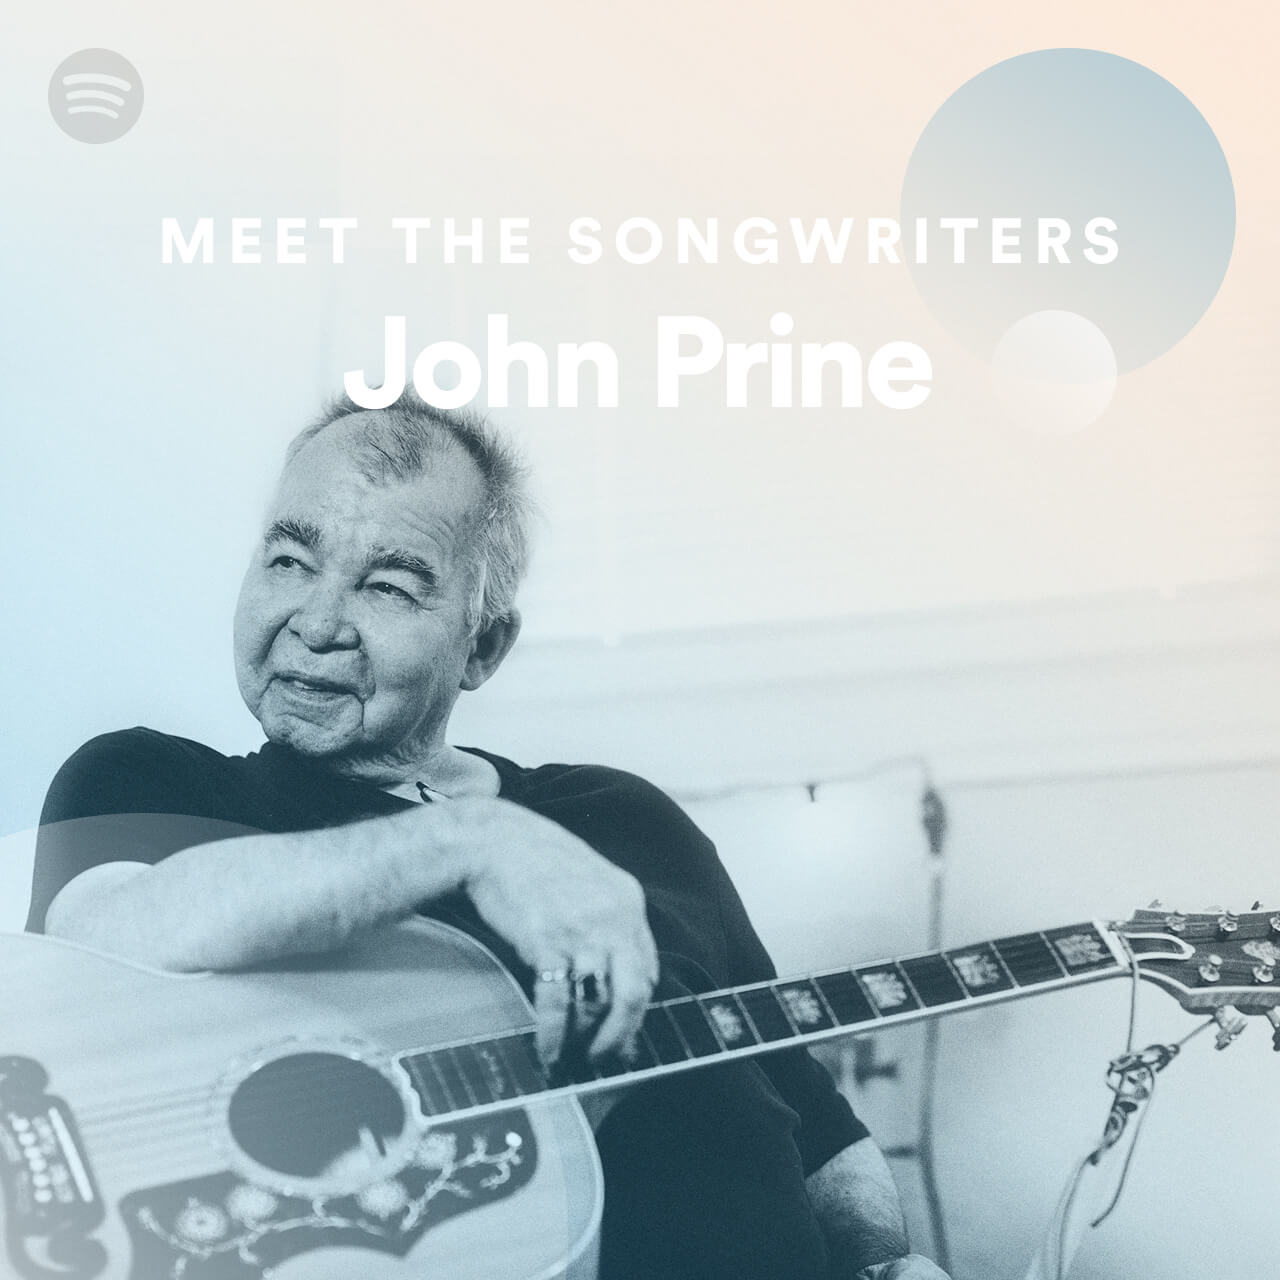 """MEET THE SONGWRITERS"" SPOTIFY PLAYLIST FEATURING JOHN PRINE"